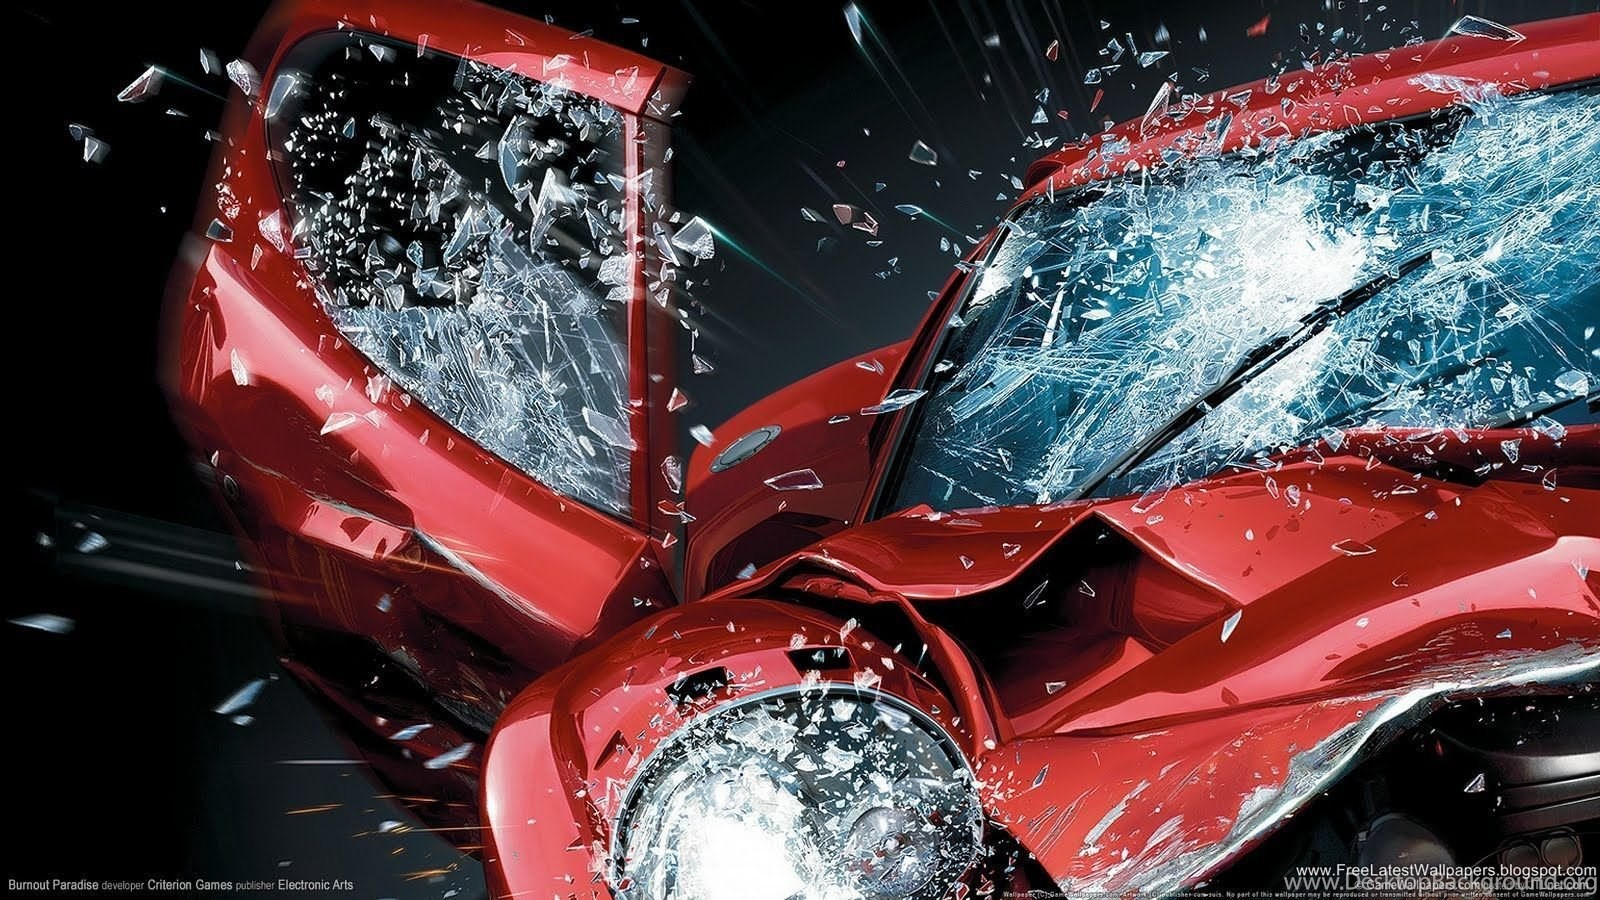 Free Games Wallpapers Free 3d Car Games Wallpapers Download Hd